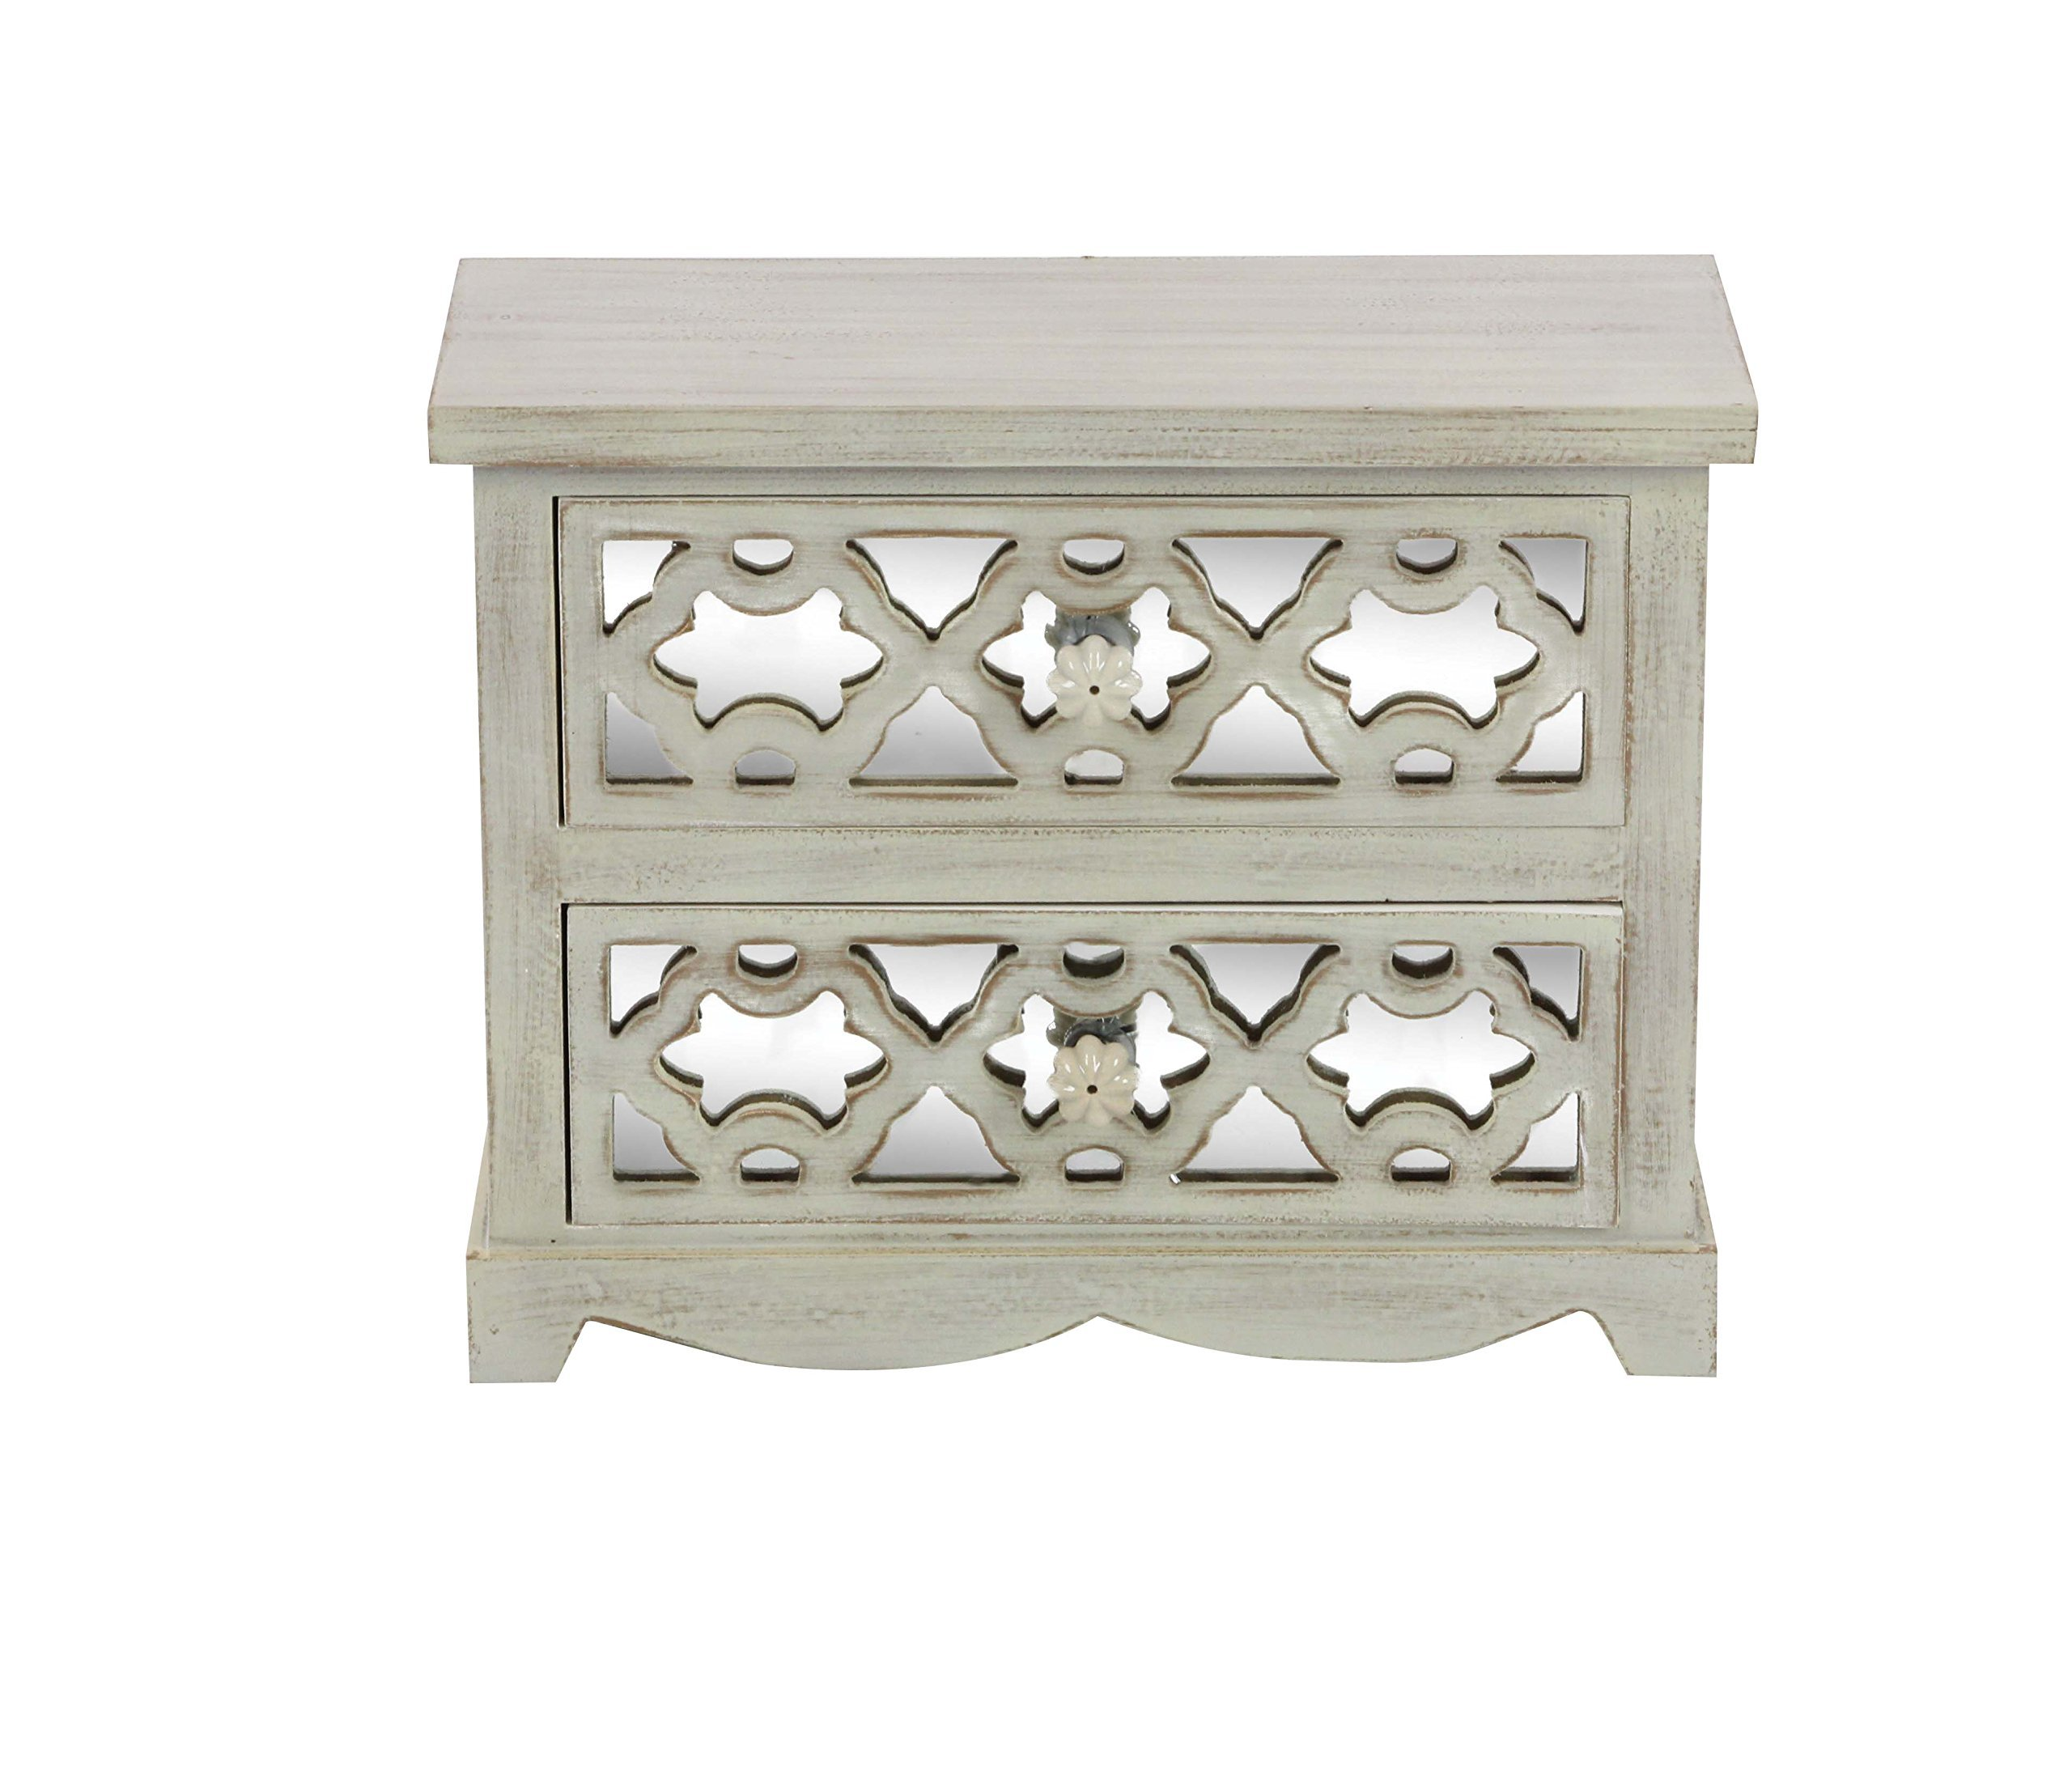 Deco 79 56698 Distressed Wooden Jewelry Chest, 10'' x 13'', LightGreen